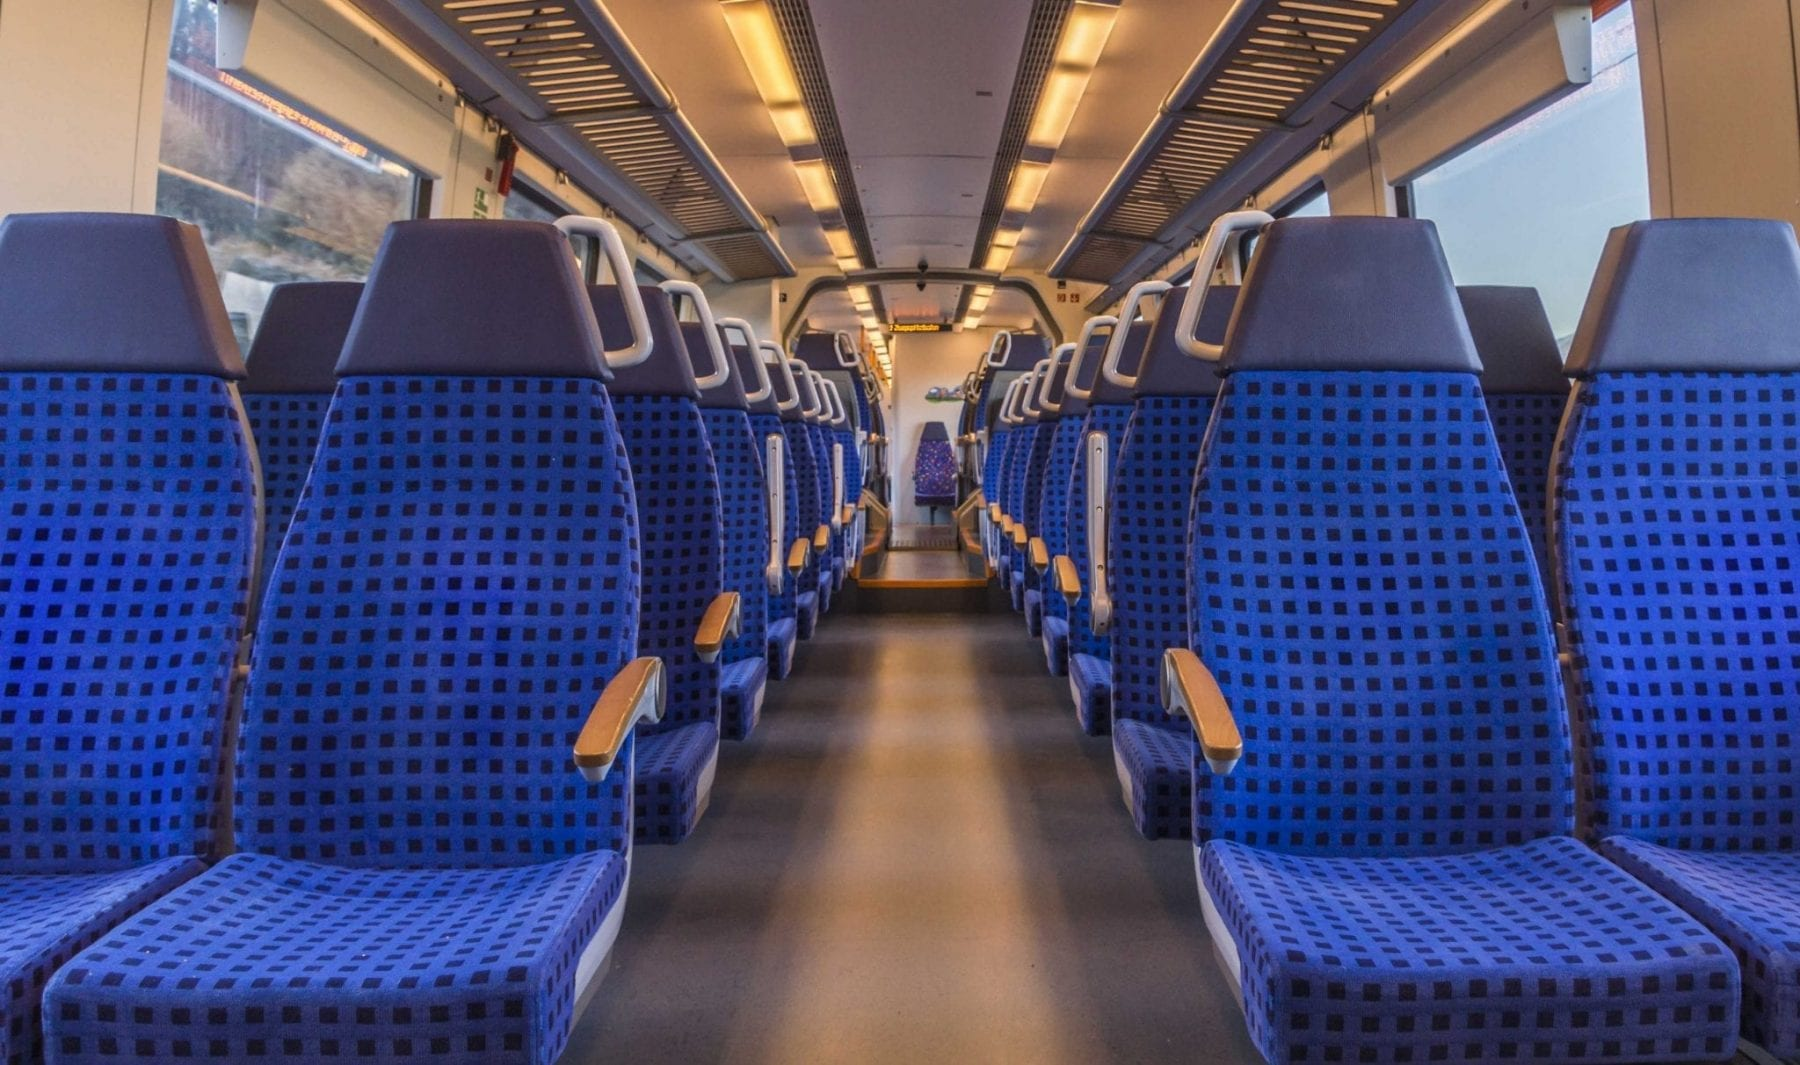 Train seating becomes hiding place for bed bugs